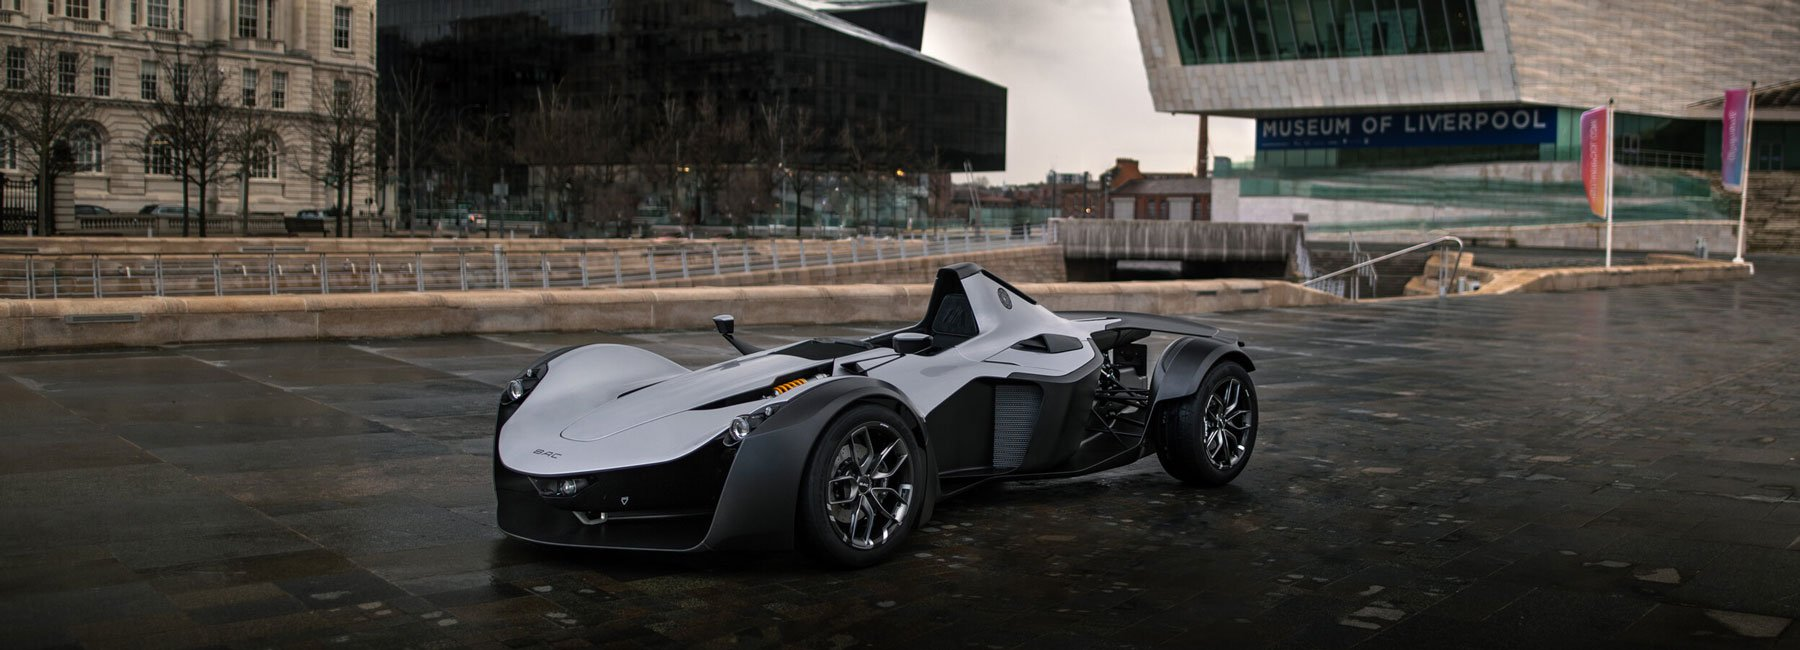 Mono supercar (BAC) innovative, light-weighting technology